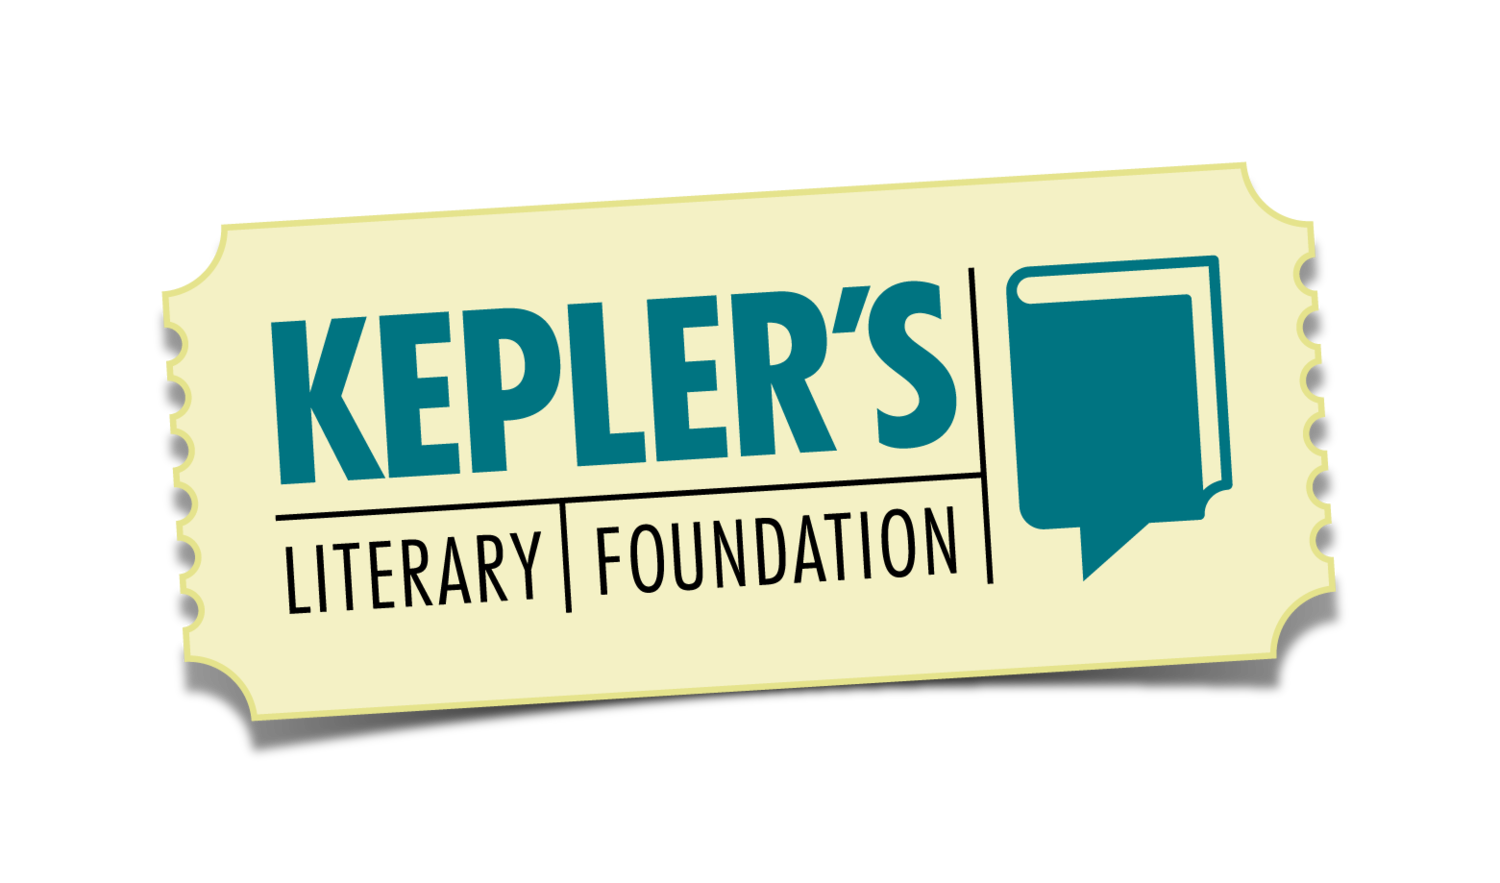 Kepler's Literary Foundation